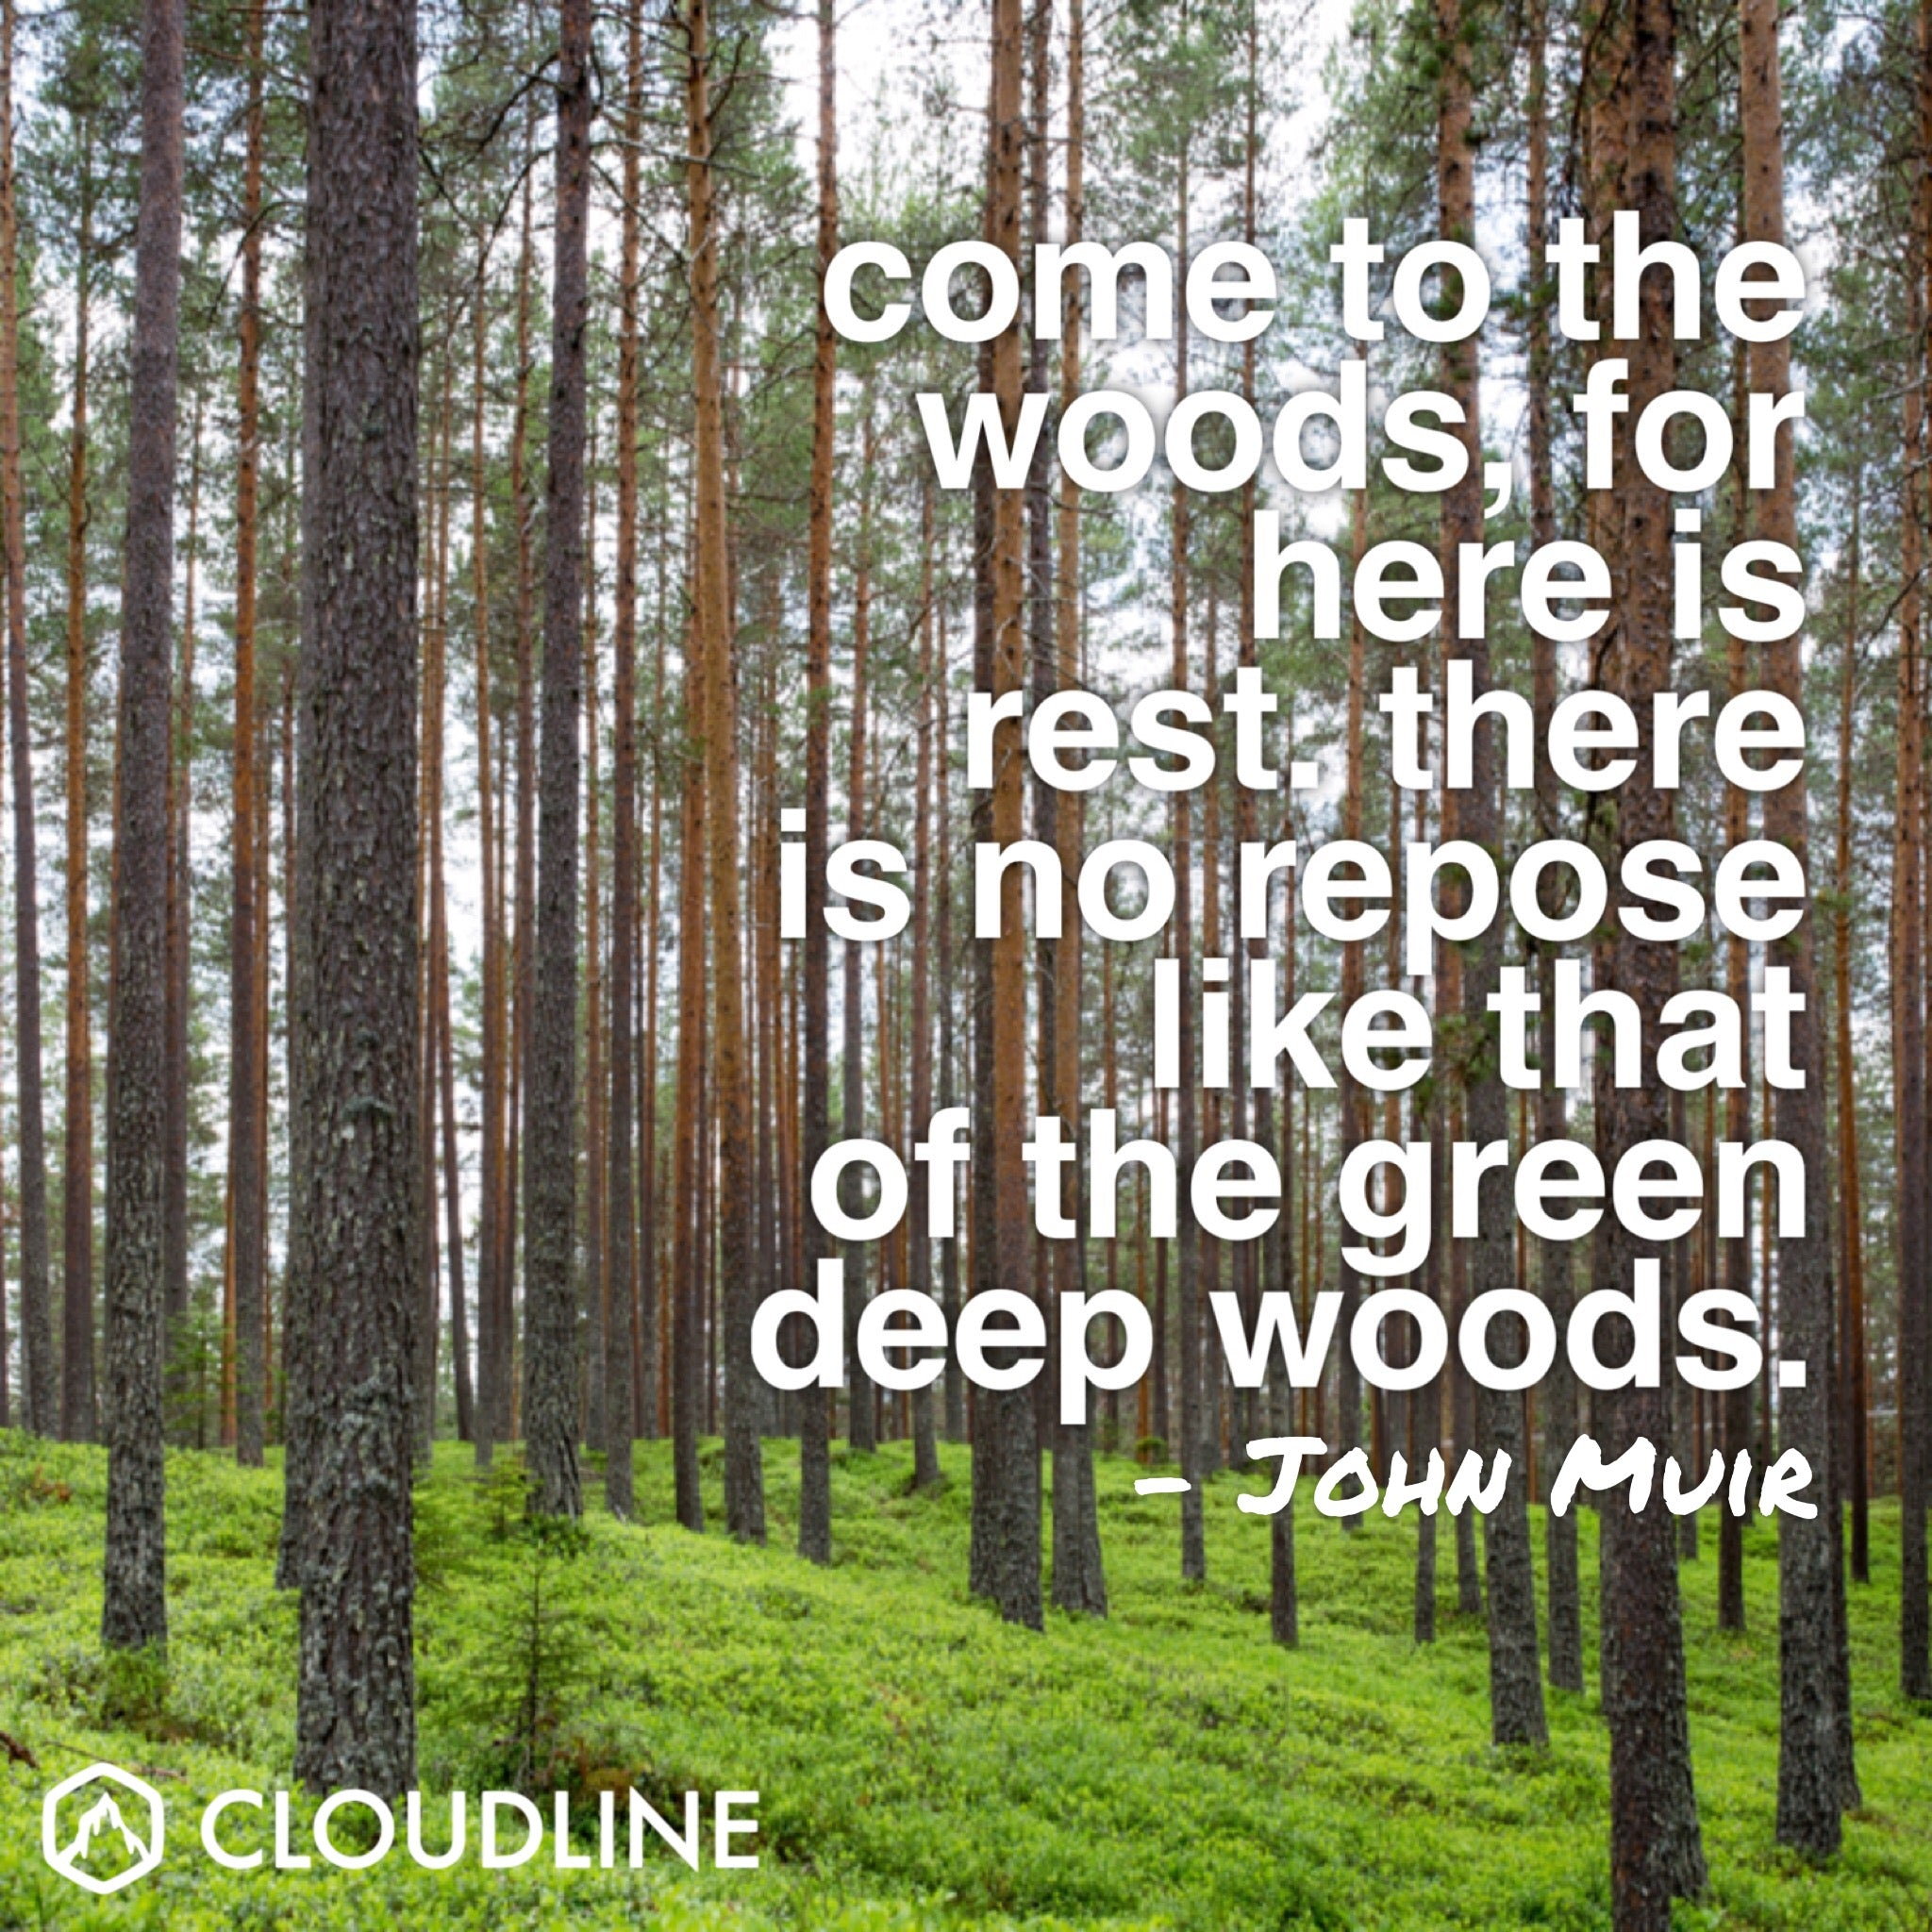 Get Inspired to Hike More with These Outdoor Quotes - John Muir